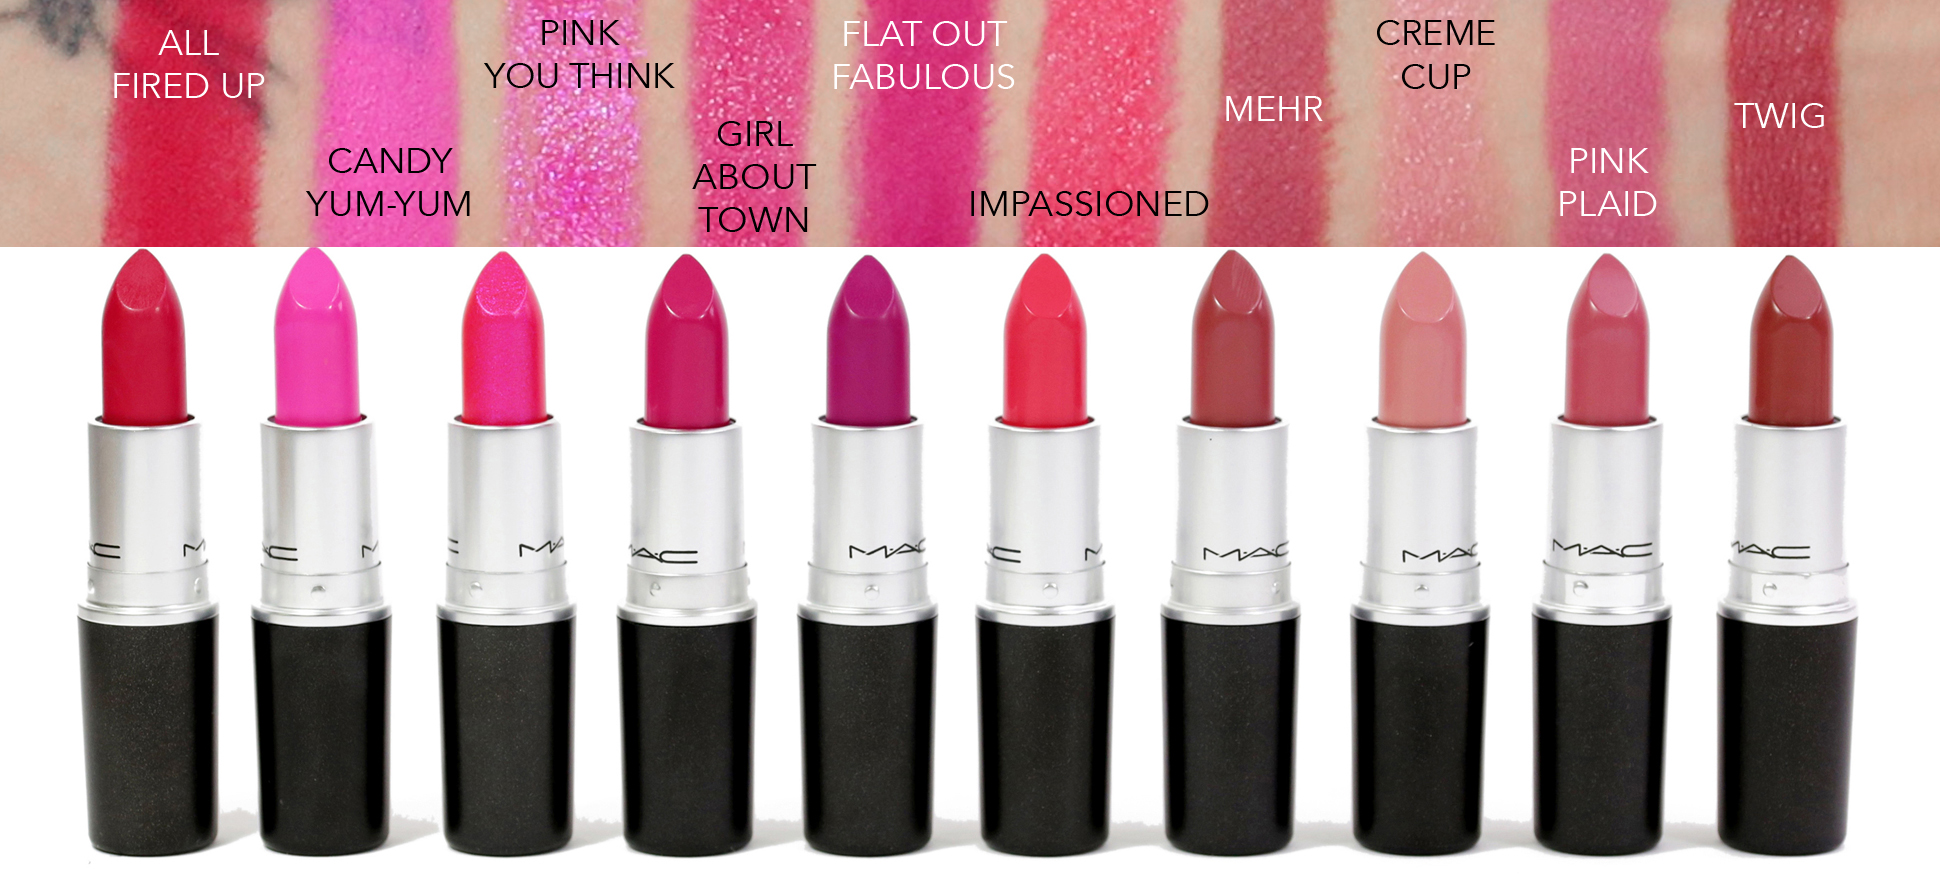 MAC's most iconic lipsticks - LIPSICK.ME - a lipstick beauty blog_2434.jpg